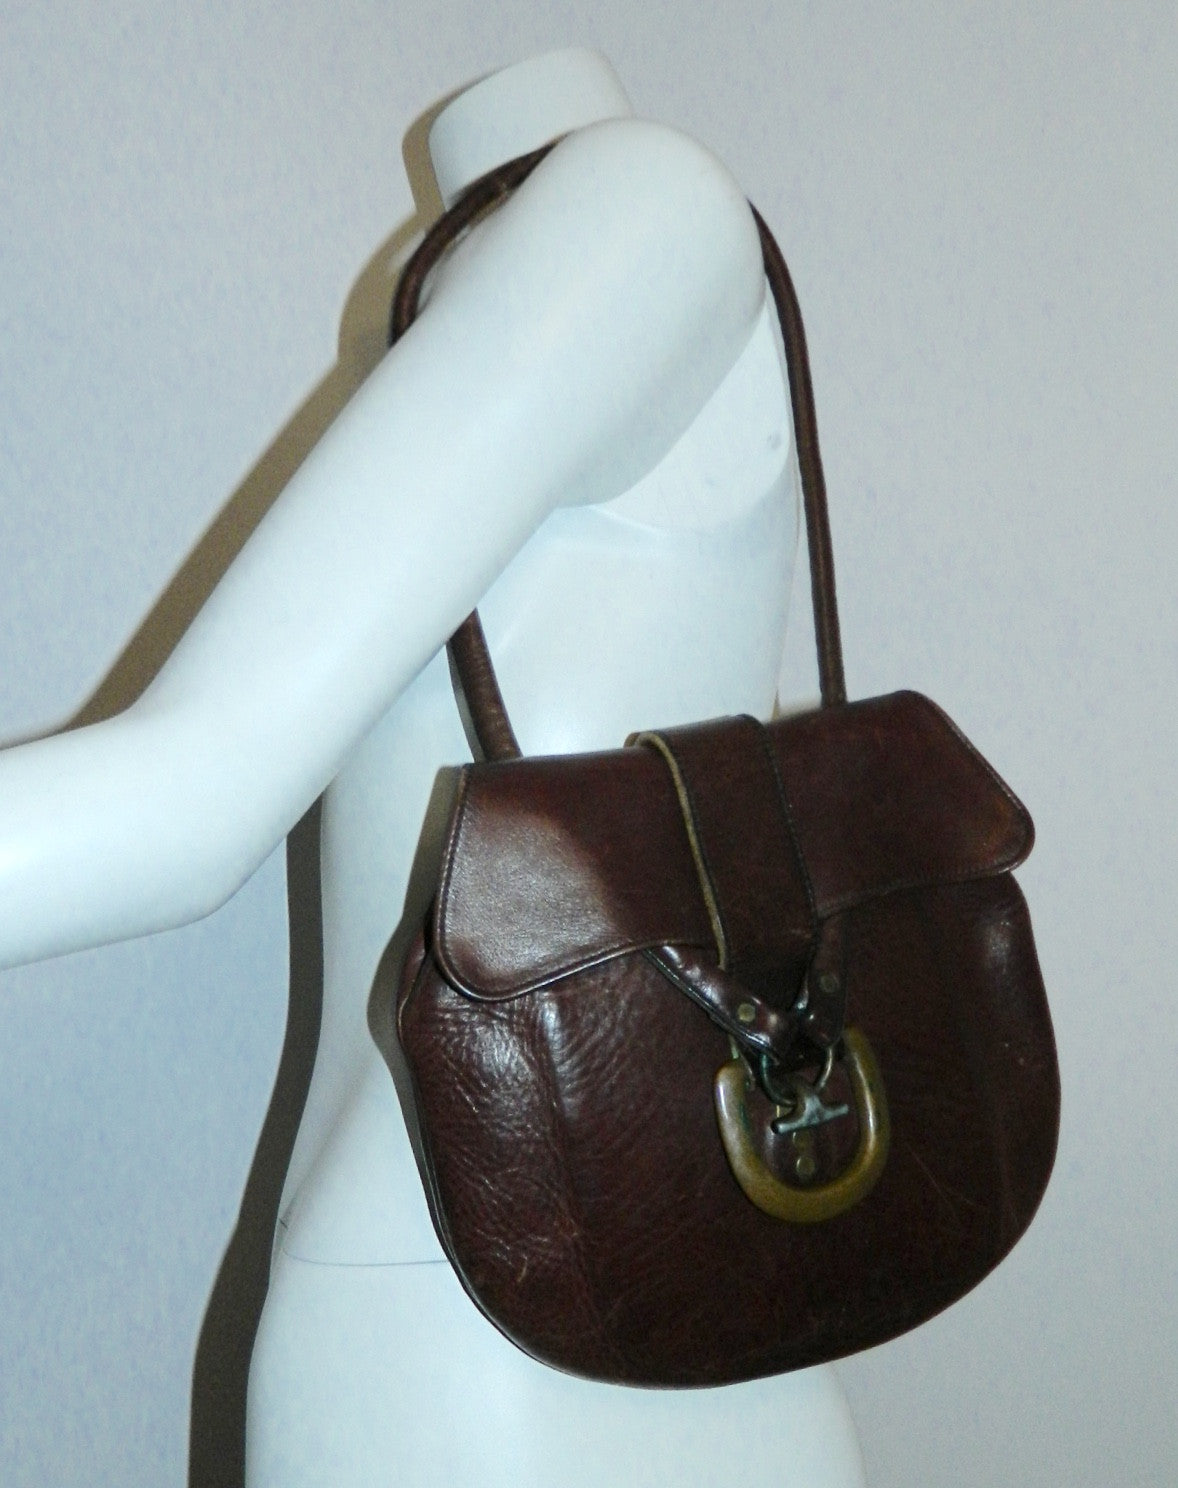 vintage 1970s purse brown leather Bort Carleton shoulder bag brass buckle